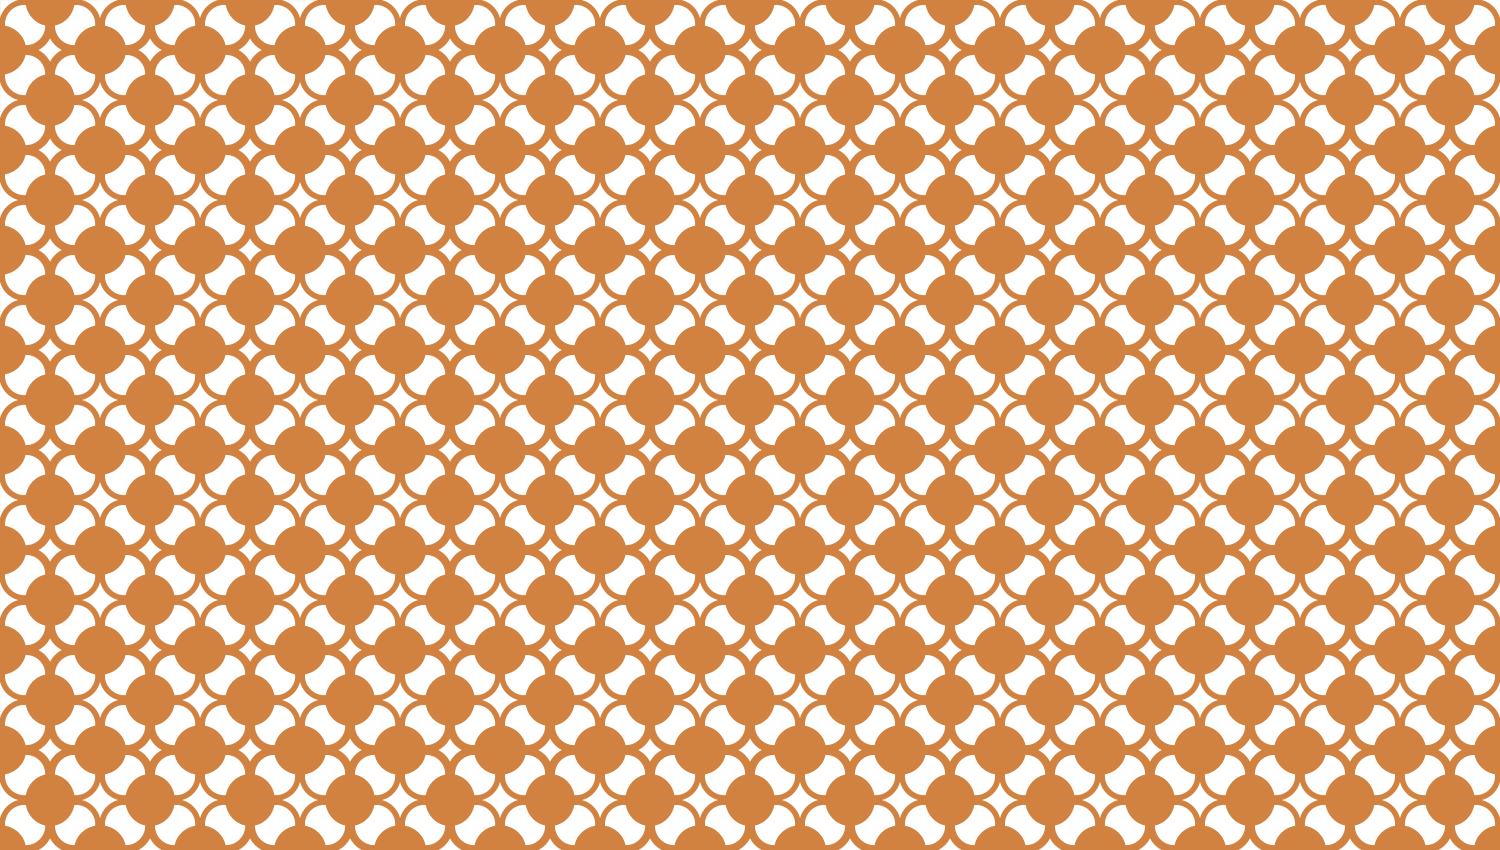 Parasoleil™ Geode© pattern displayed with a ochre color overlay